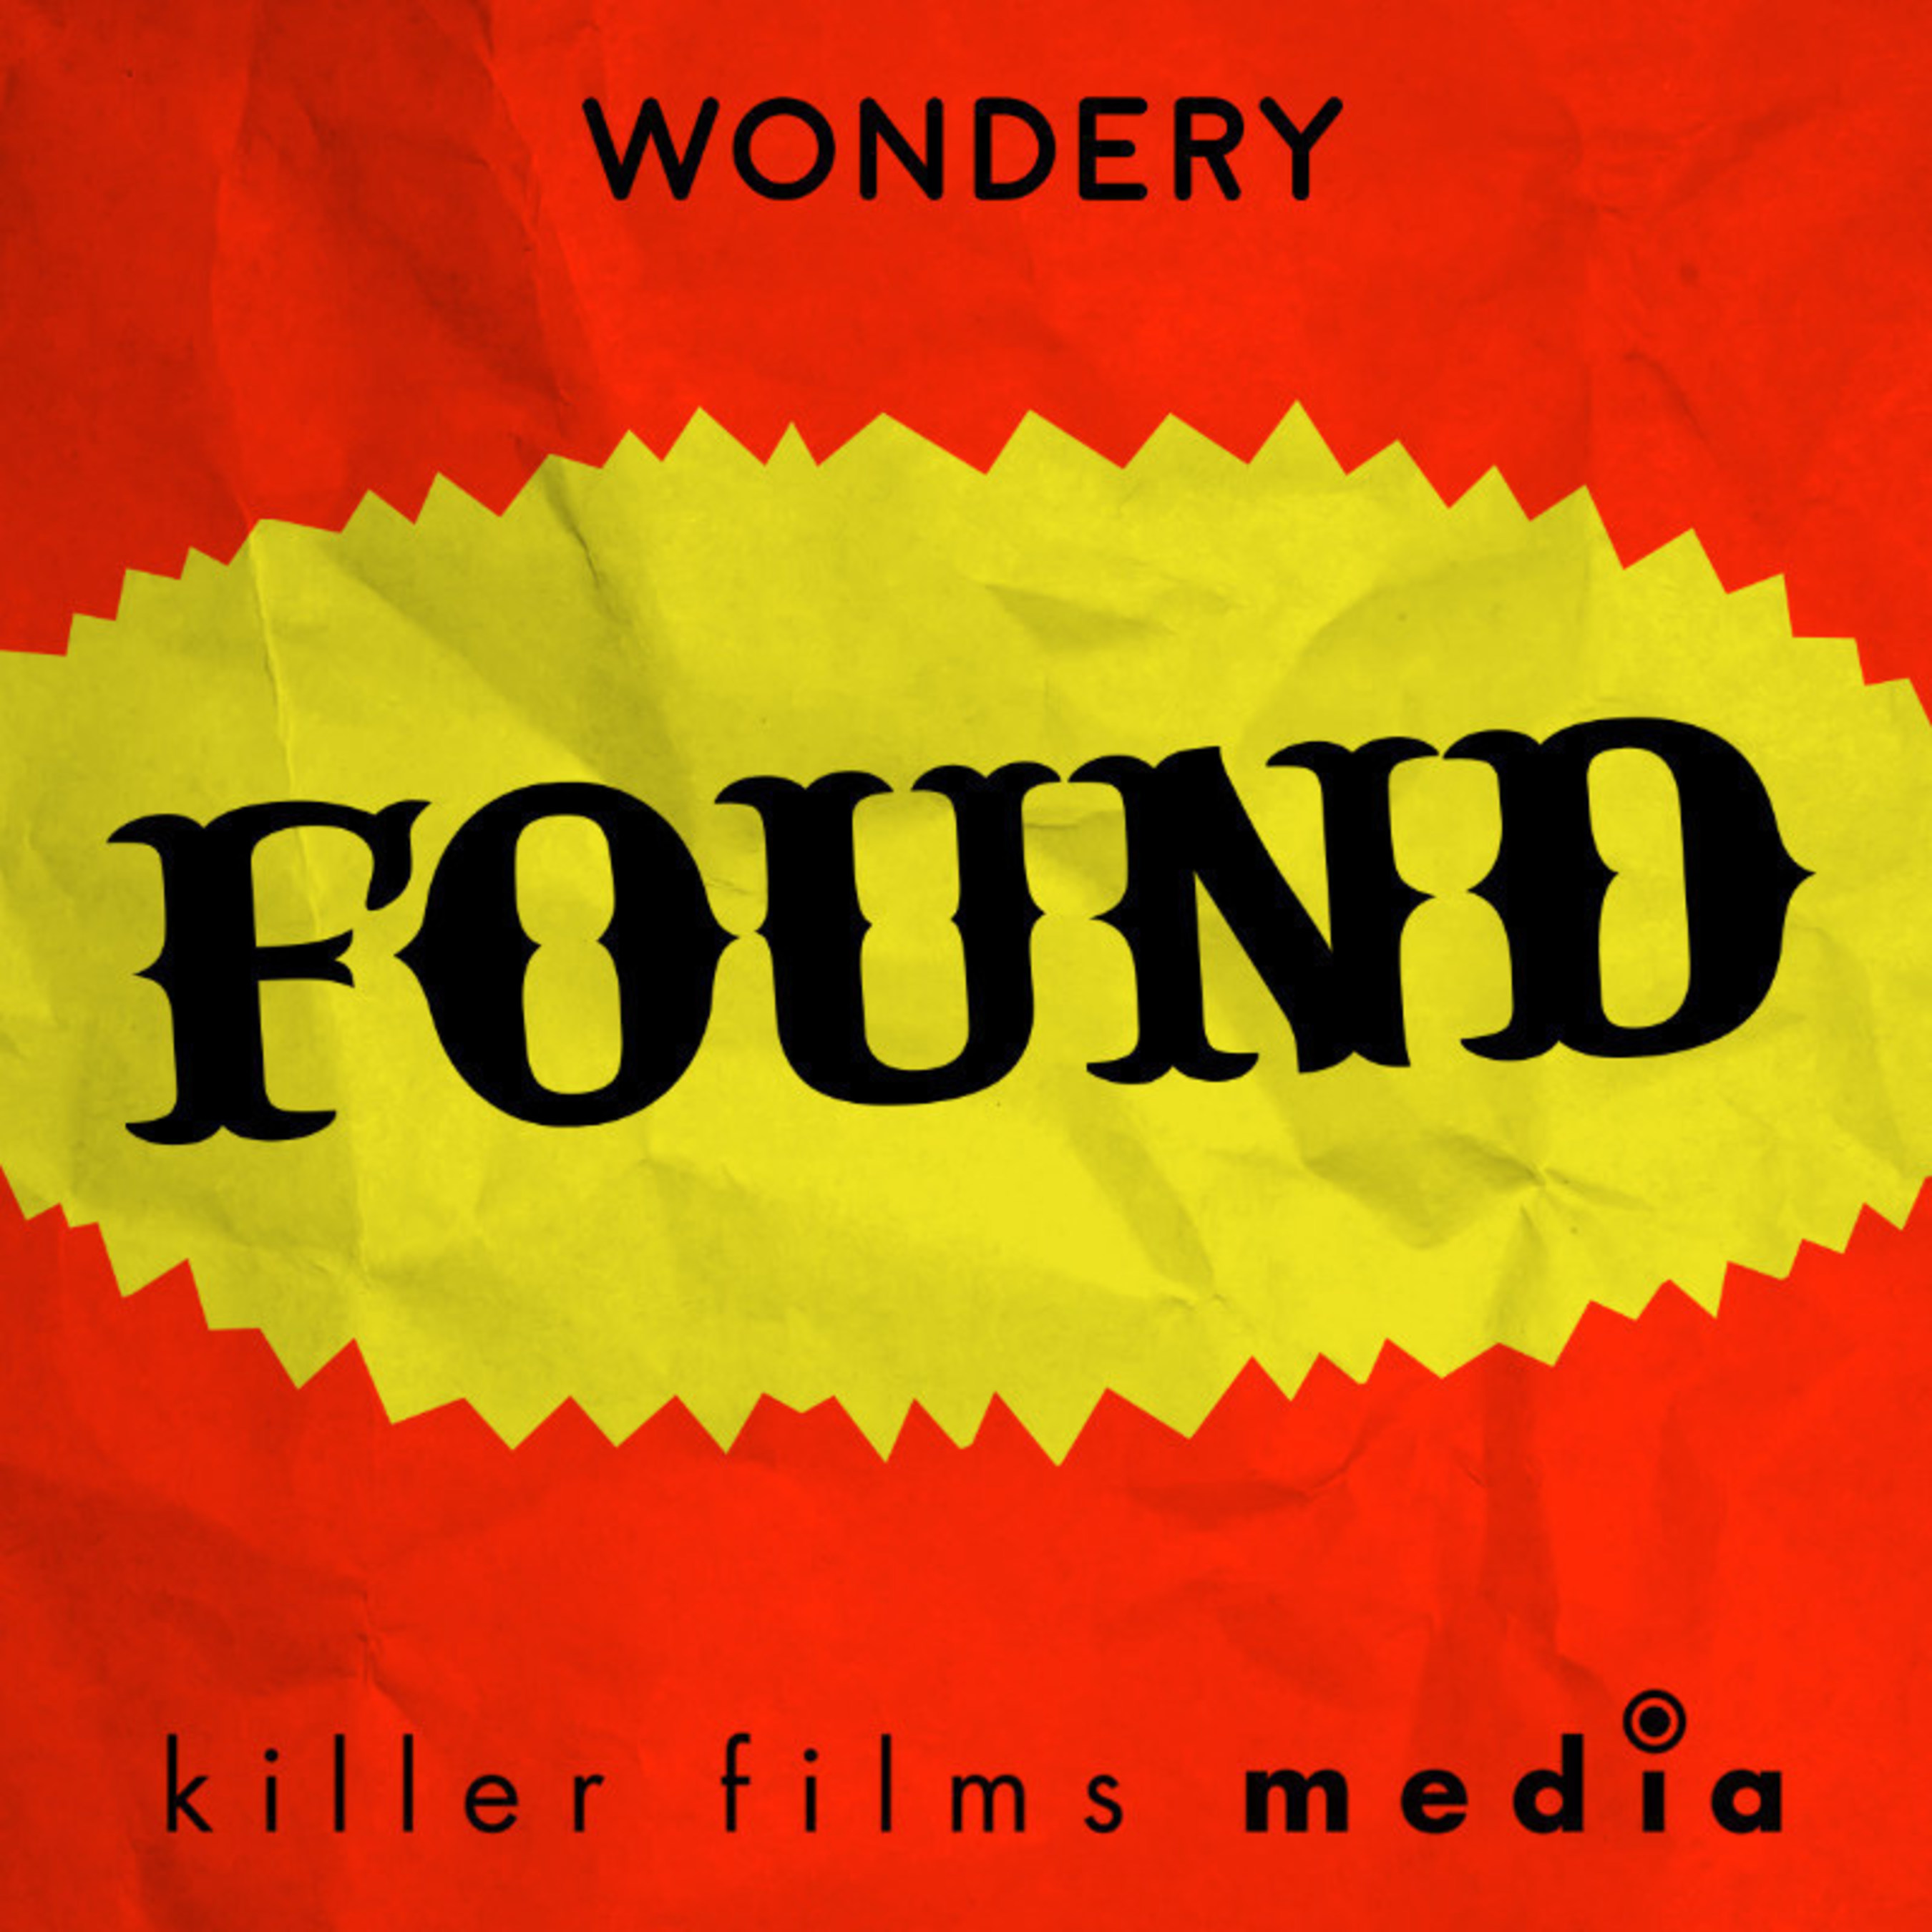 FOUND, The Musical and Killer Films Media Partner With Wondery to Launch the FOUND Podcast Series and App